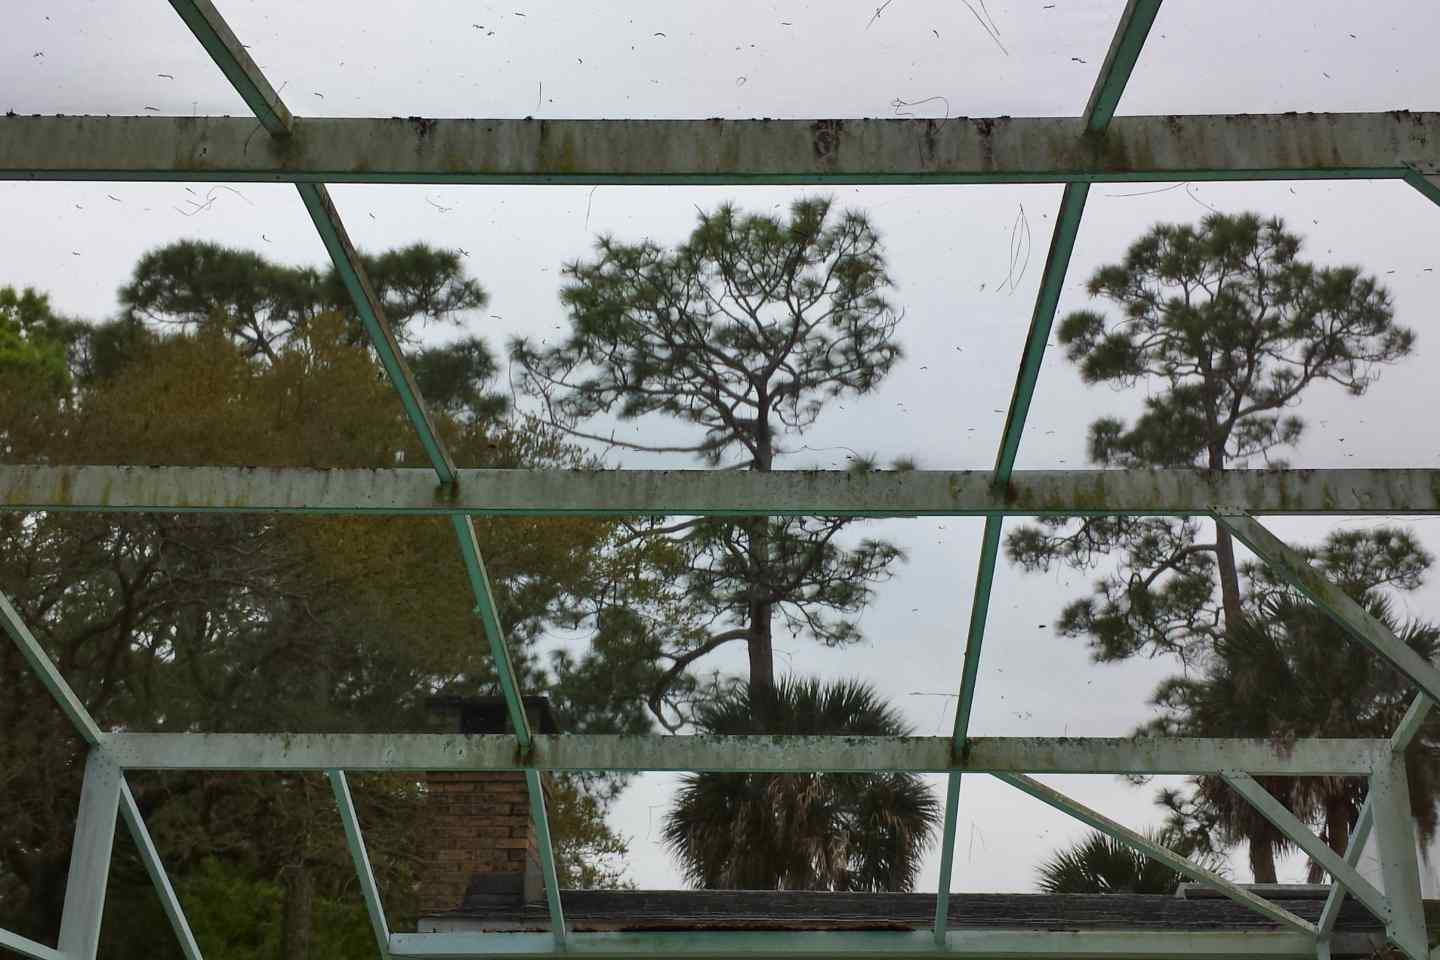 03-before-pressure-clean-pool-enclosure.jpg